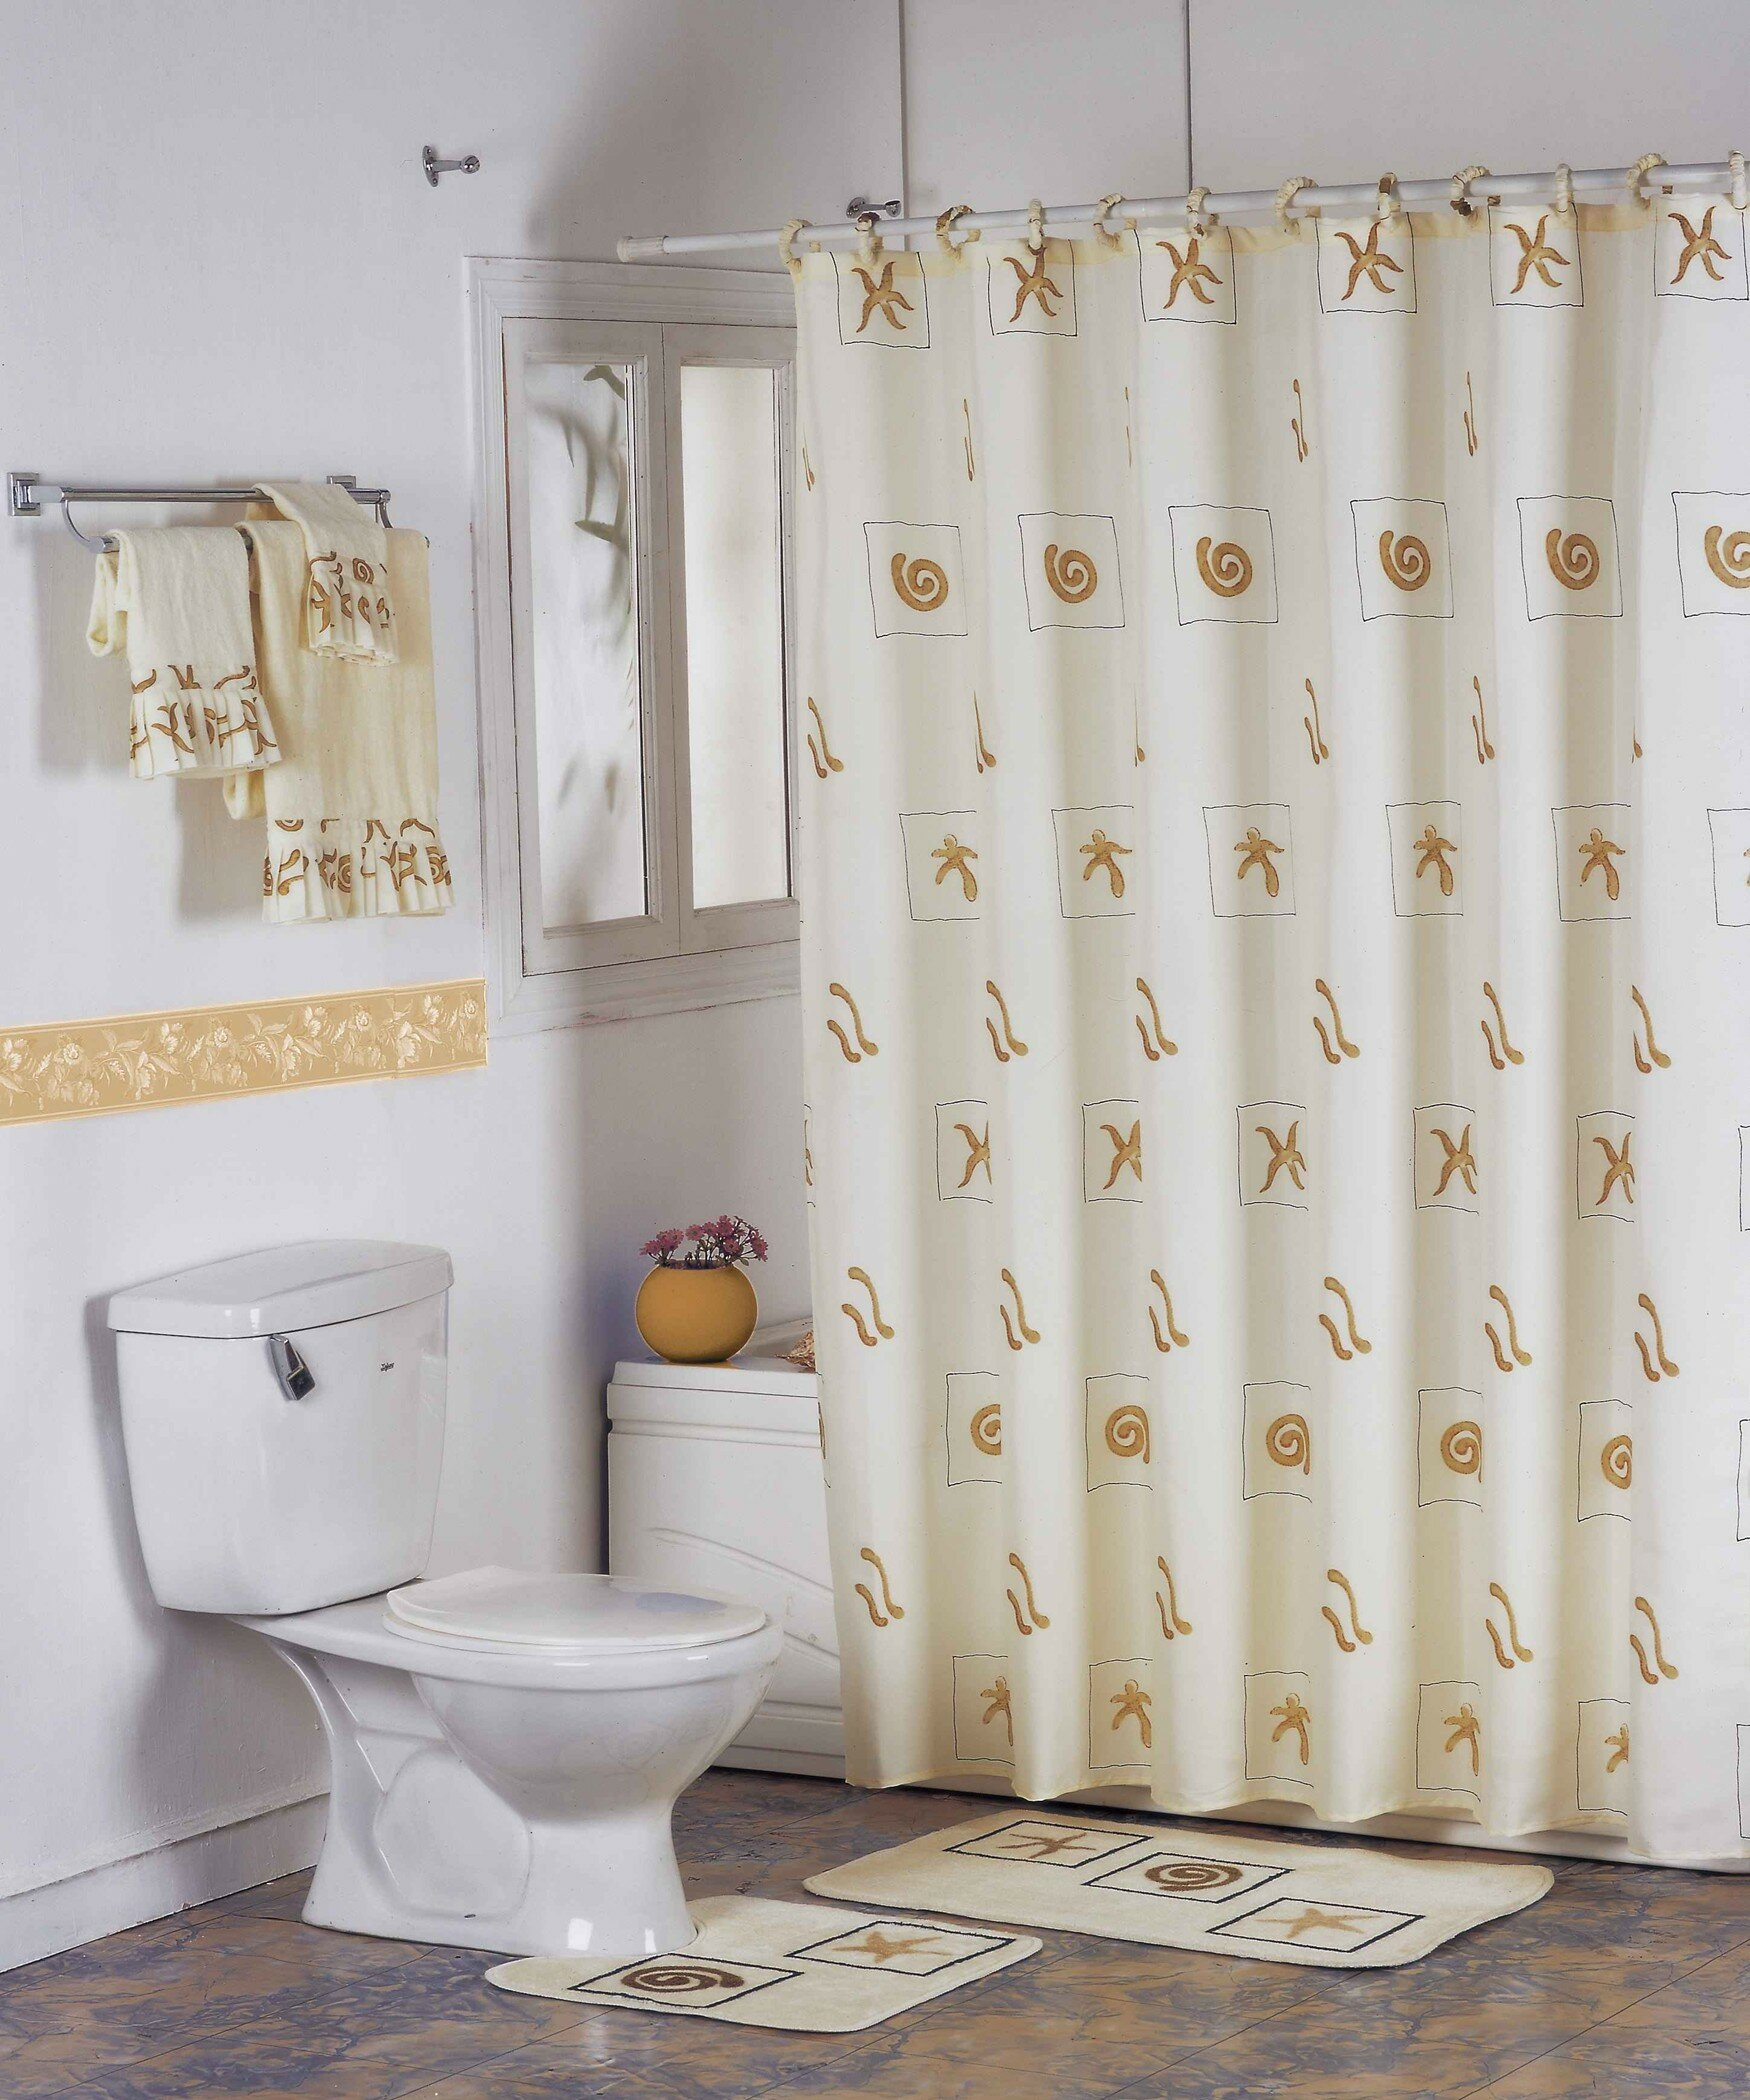 High End Shower Curtains | Brushed Nickel Curtain Rod | Restoration Hardware Shower Curtain